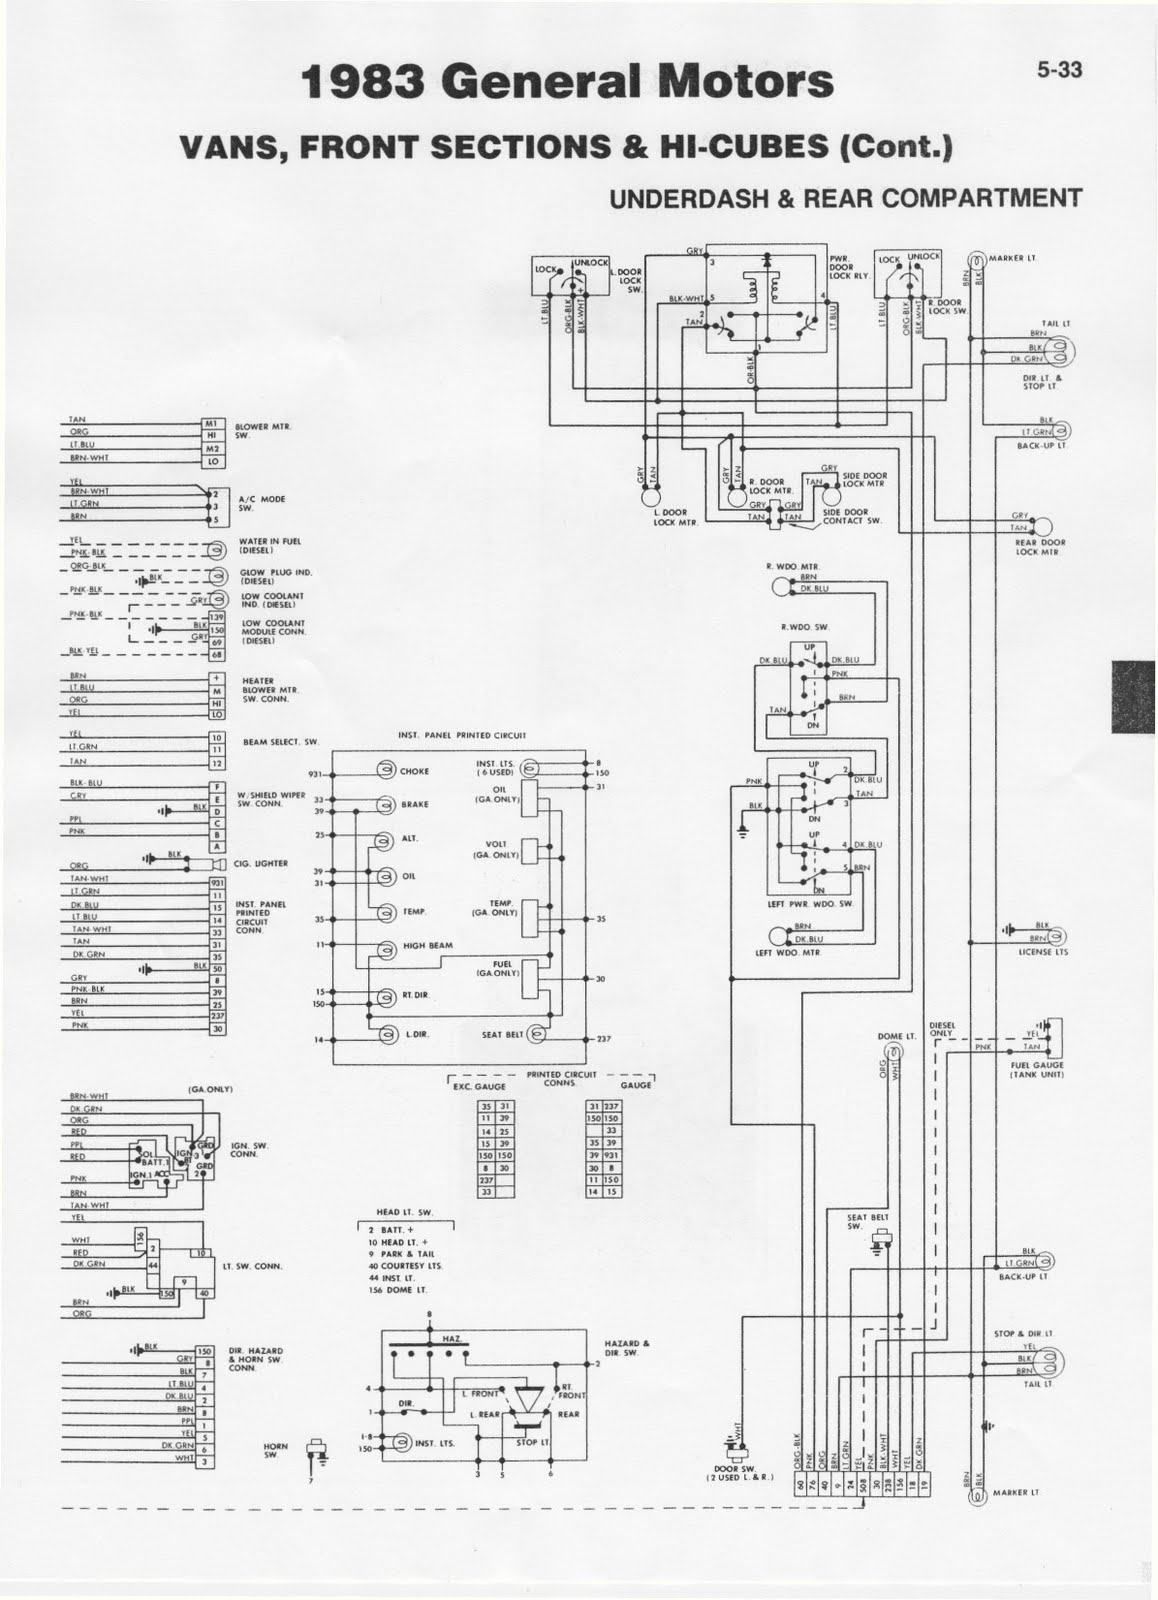 83%2Bgm%2Bforward%2Bcontrol%2Bwiring%2Bcharts-004  Amp Rv Schematic Wiring Diagram on twist lock cord, service box, receptacle electrical, breaker box,